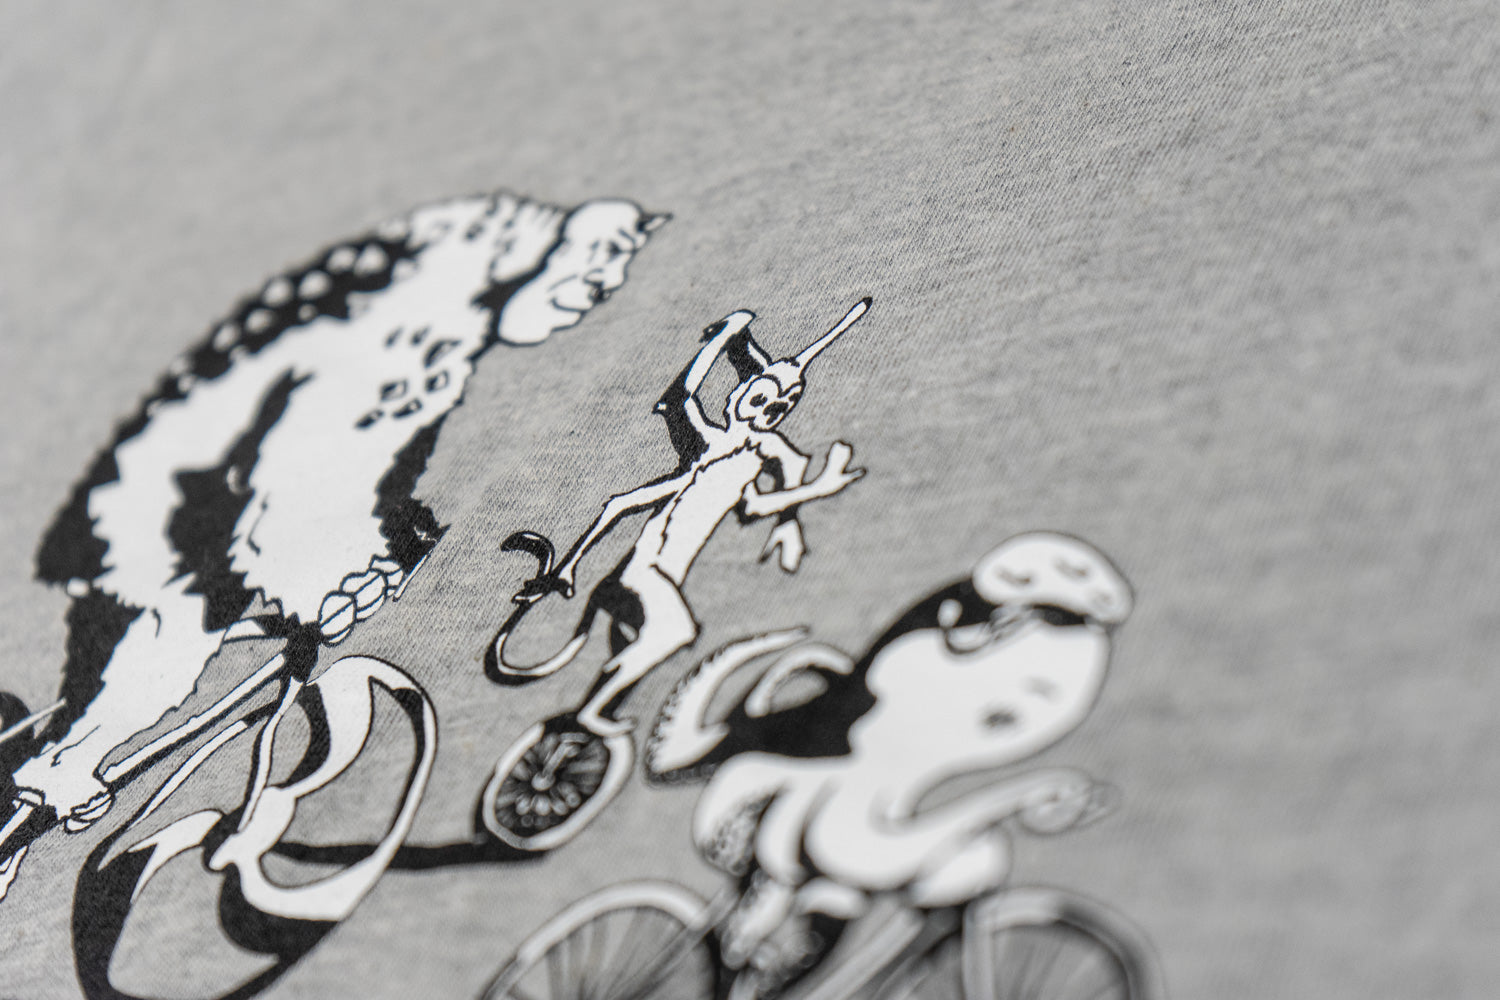 Women's Bike More Monsters T-Shirt Apparel - Looptworks